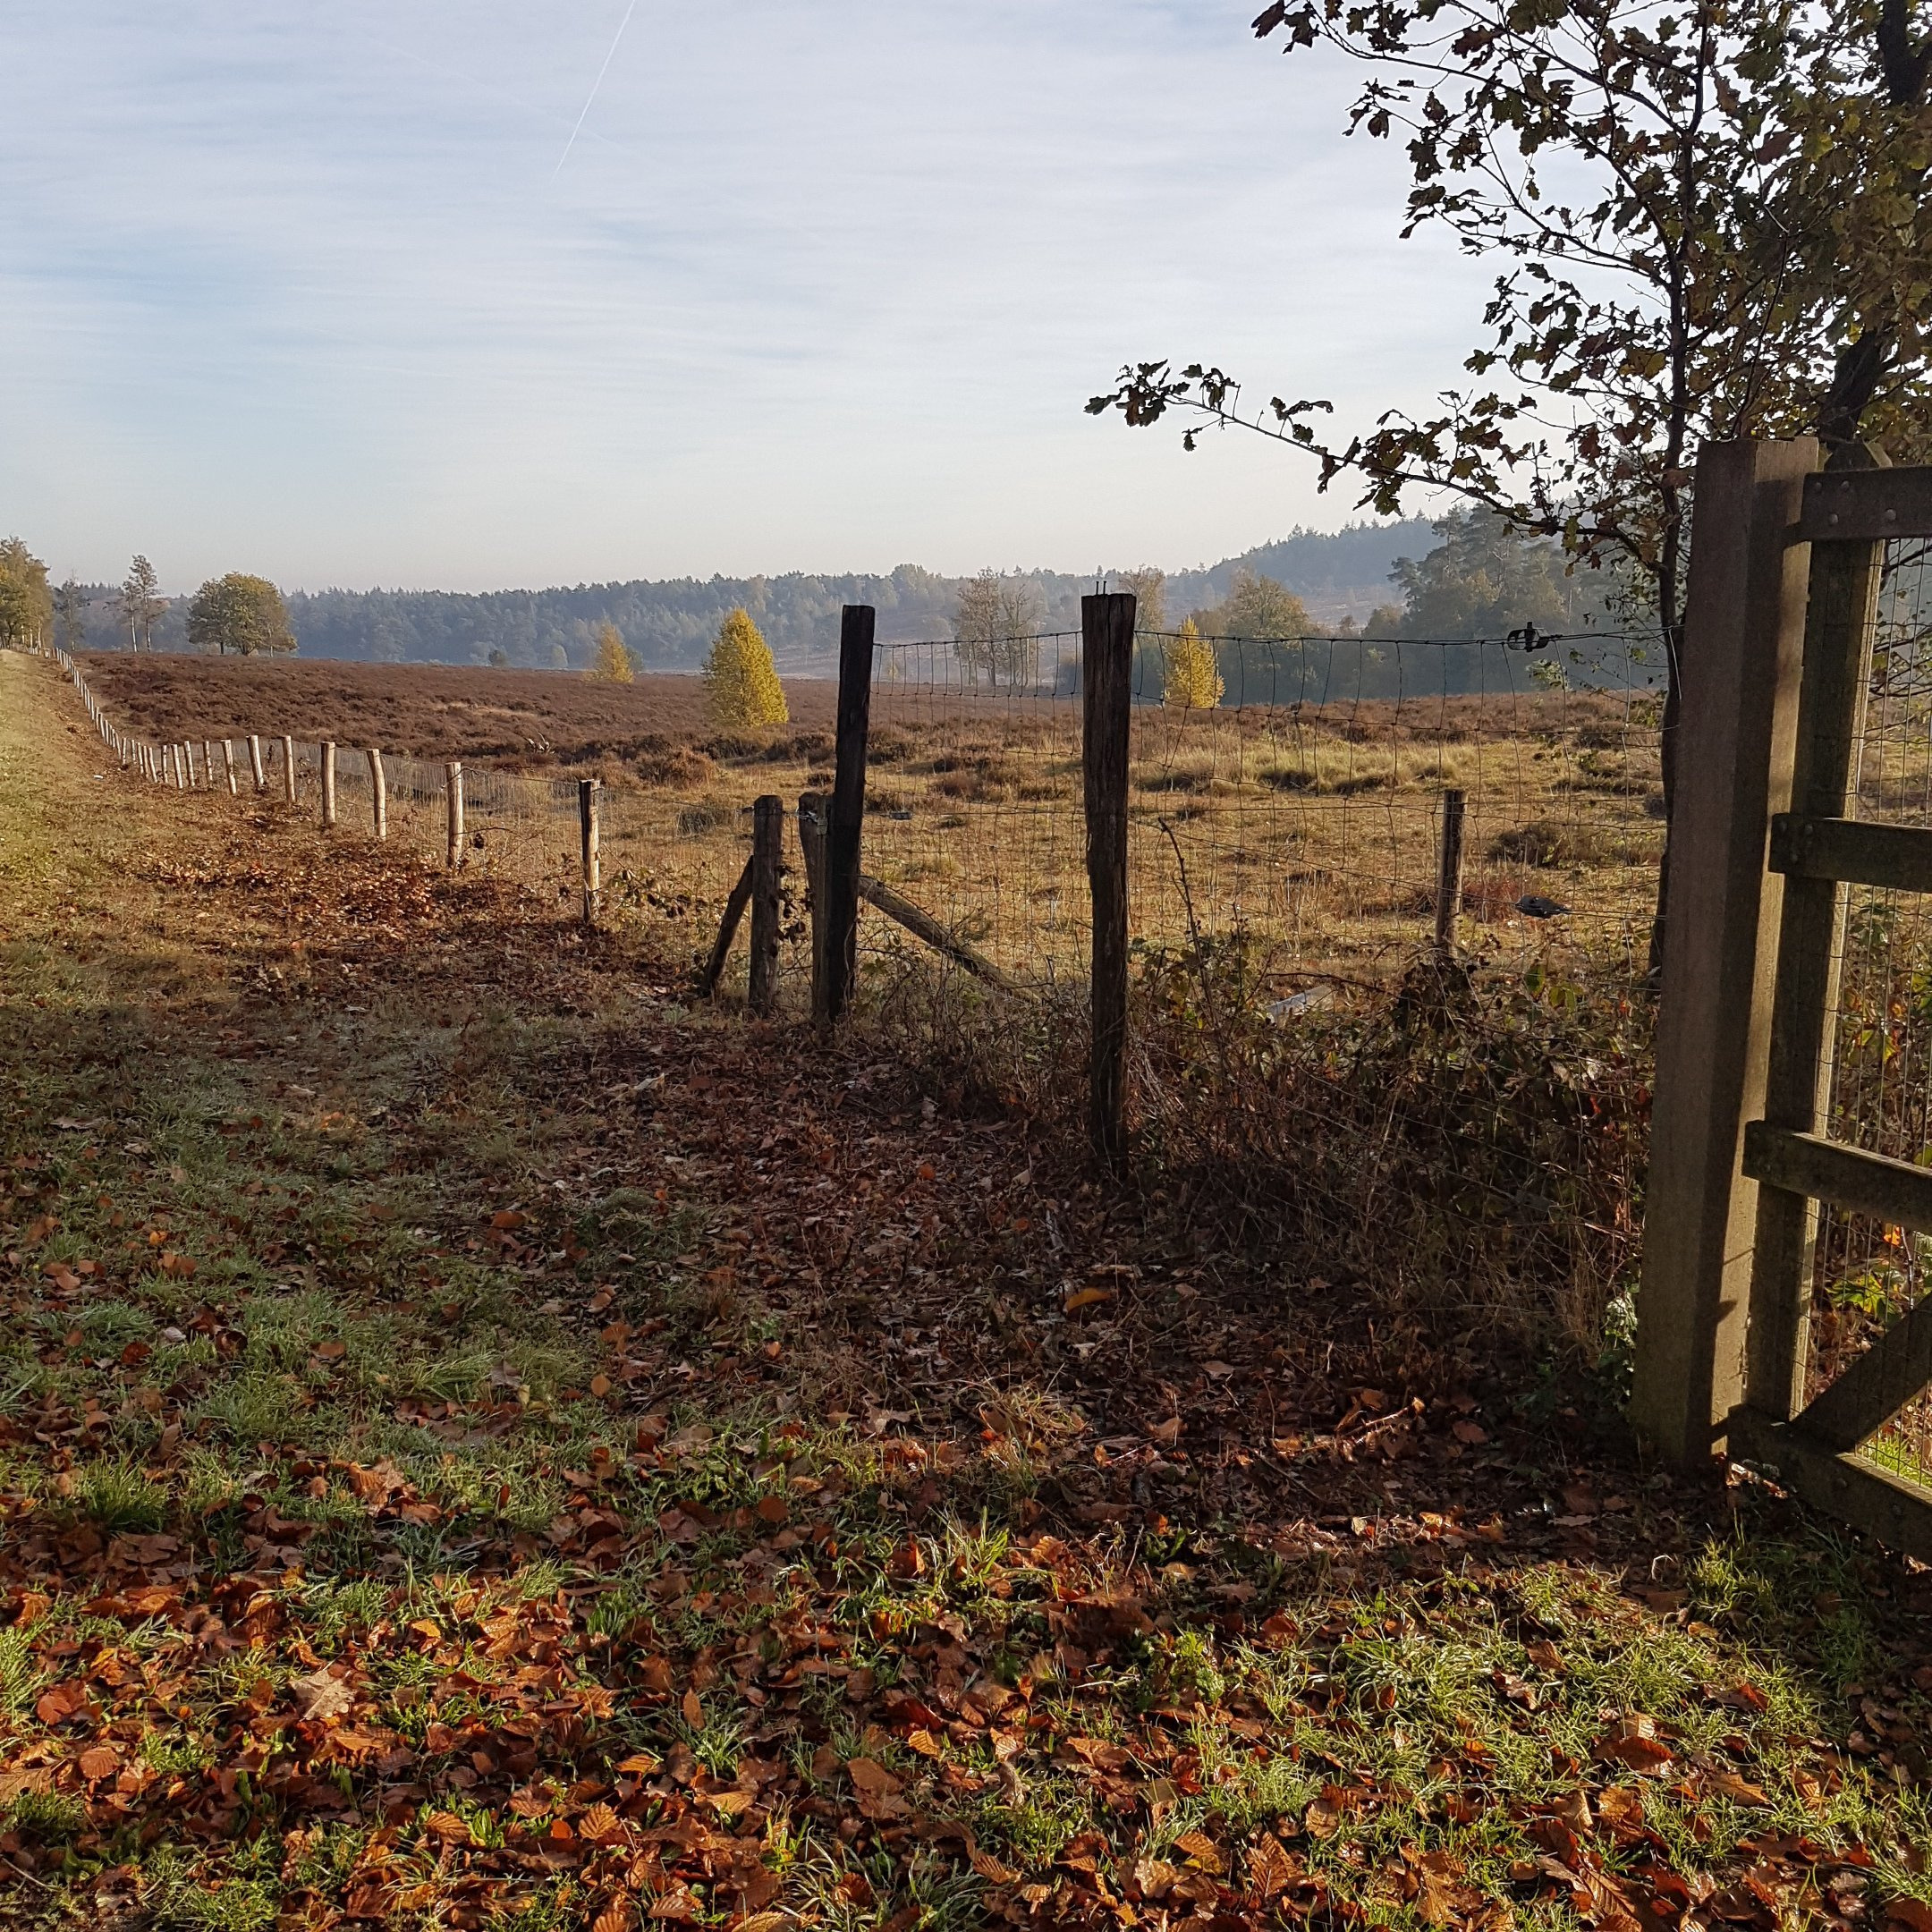 The view from the geocache at the gate - itstartswithacoffee.com #geocache #geocaching #geocachingNL #geocachingNetherlands #geocachingfun